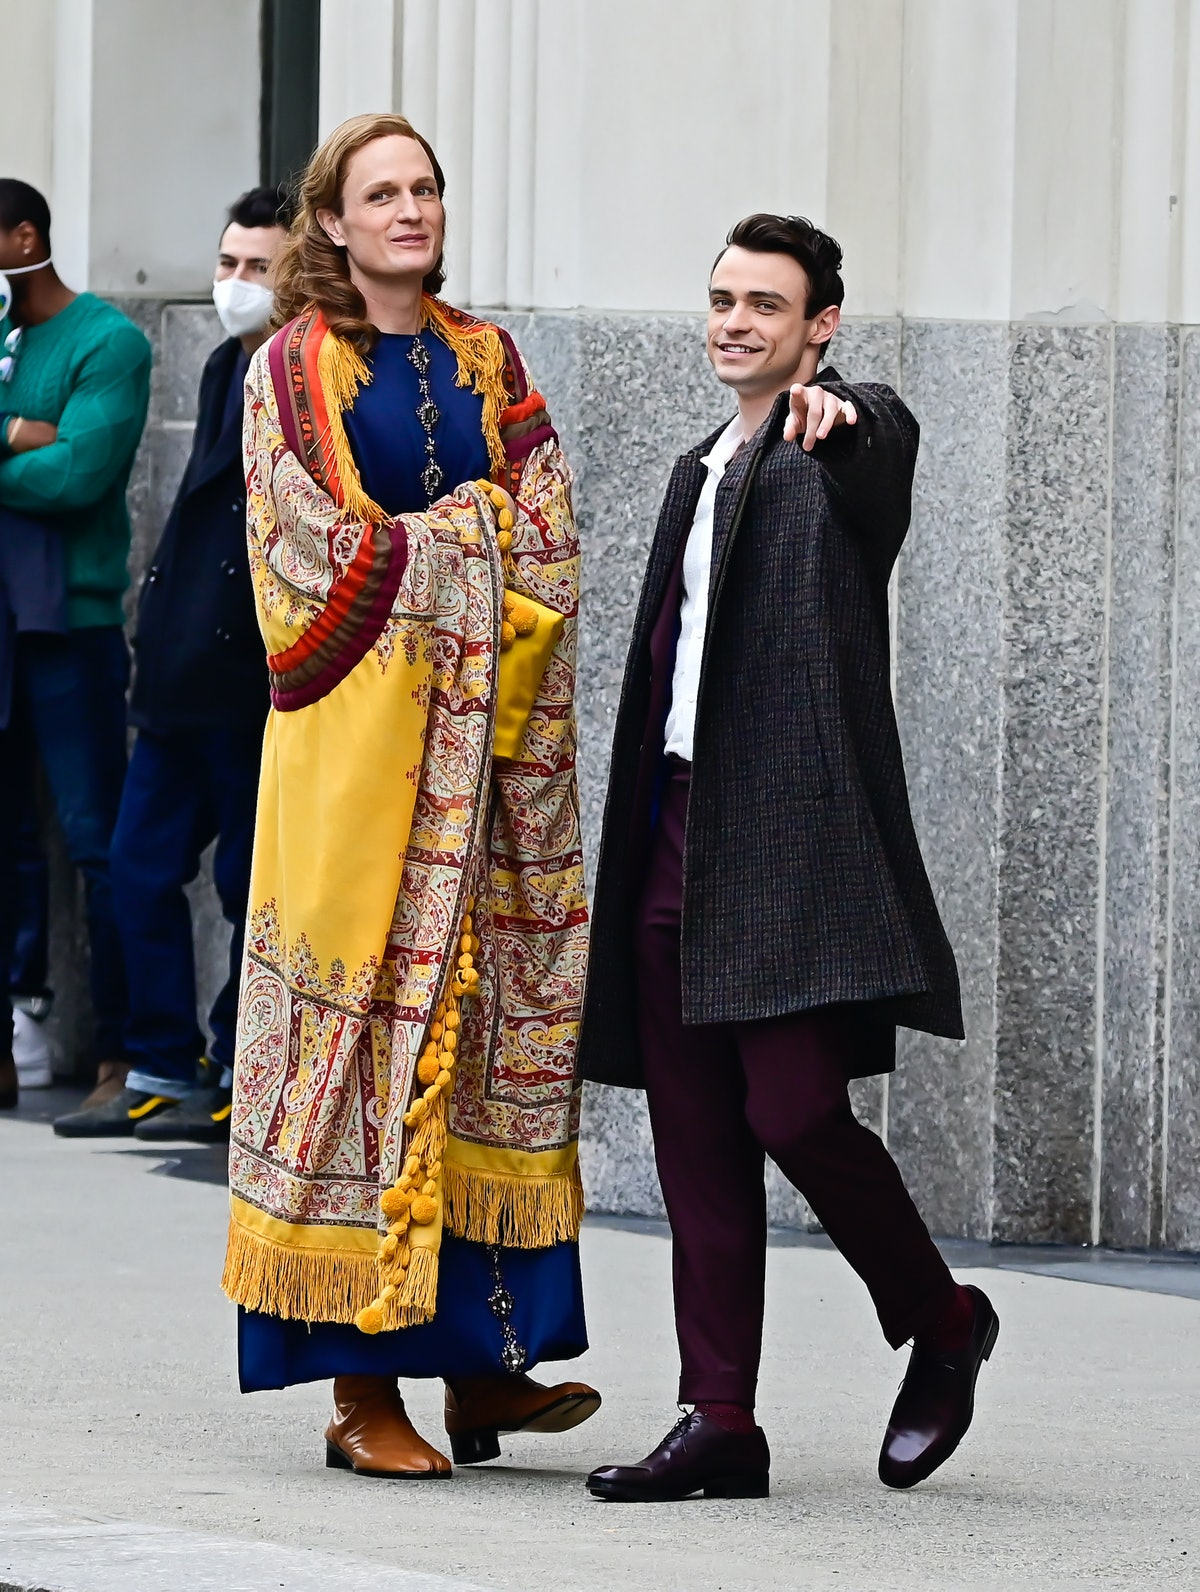 Todd Almond and Thomas Doherty on the set of Gossip Girl